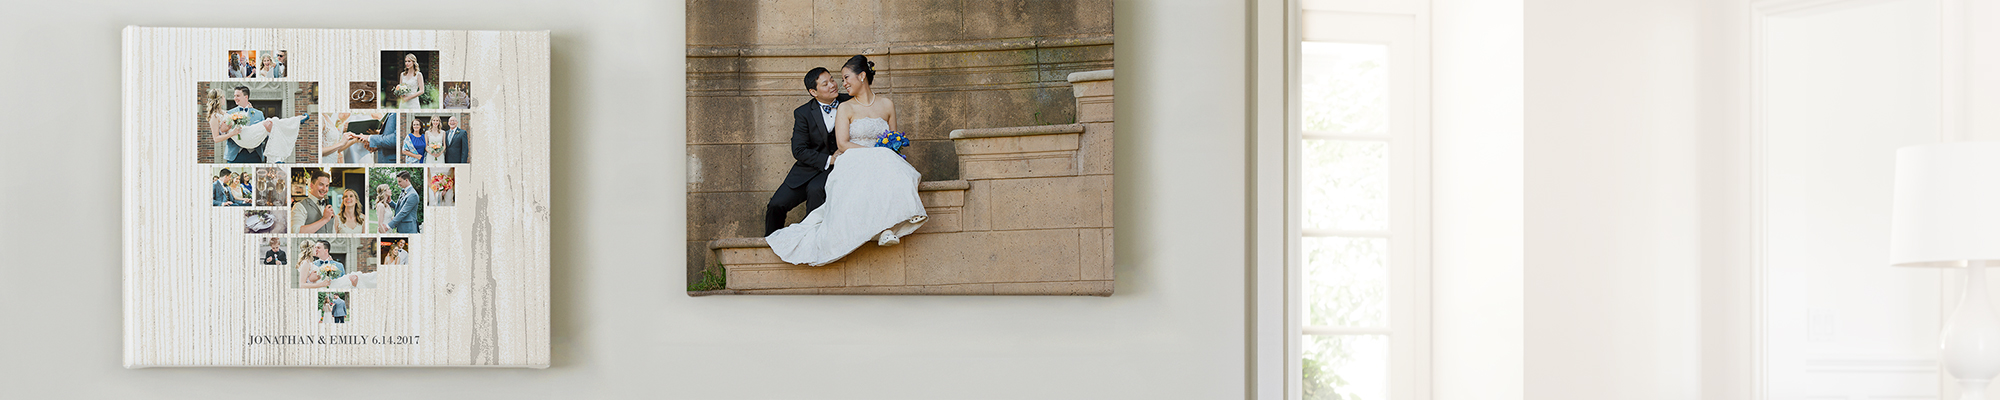 Wedding Photo Cards + Gifts   To love, laughter + happily ever after! Keep the magic hanging around.